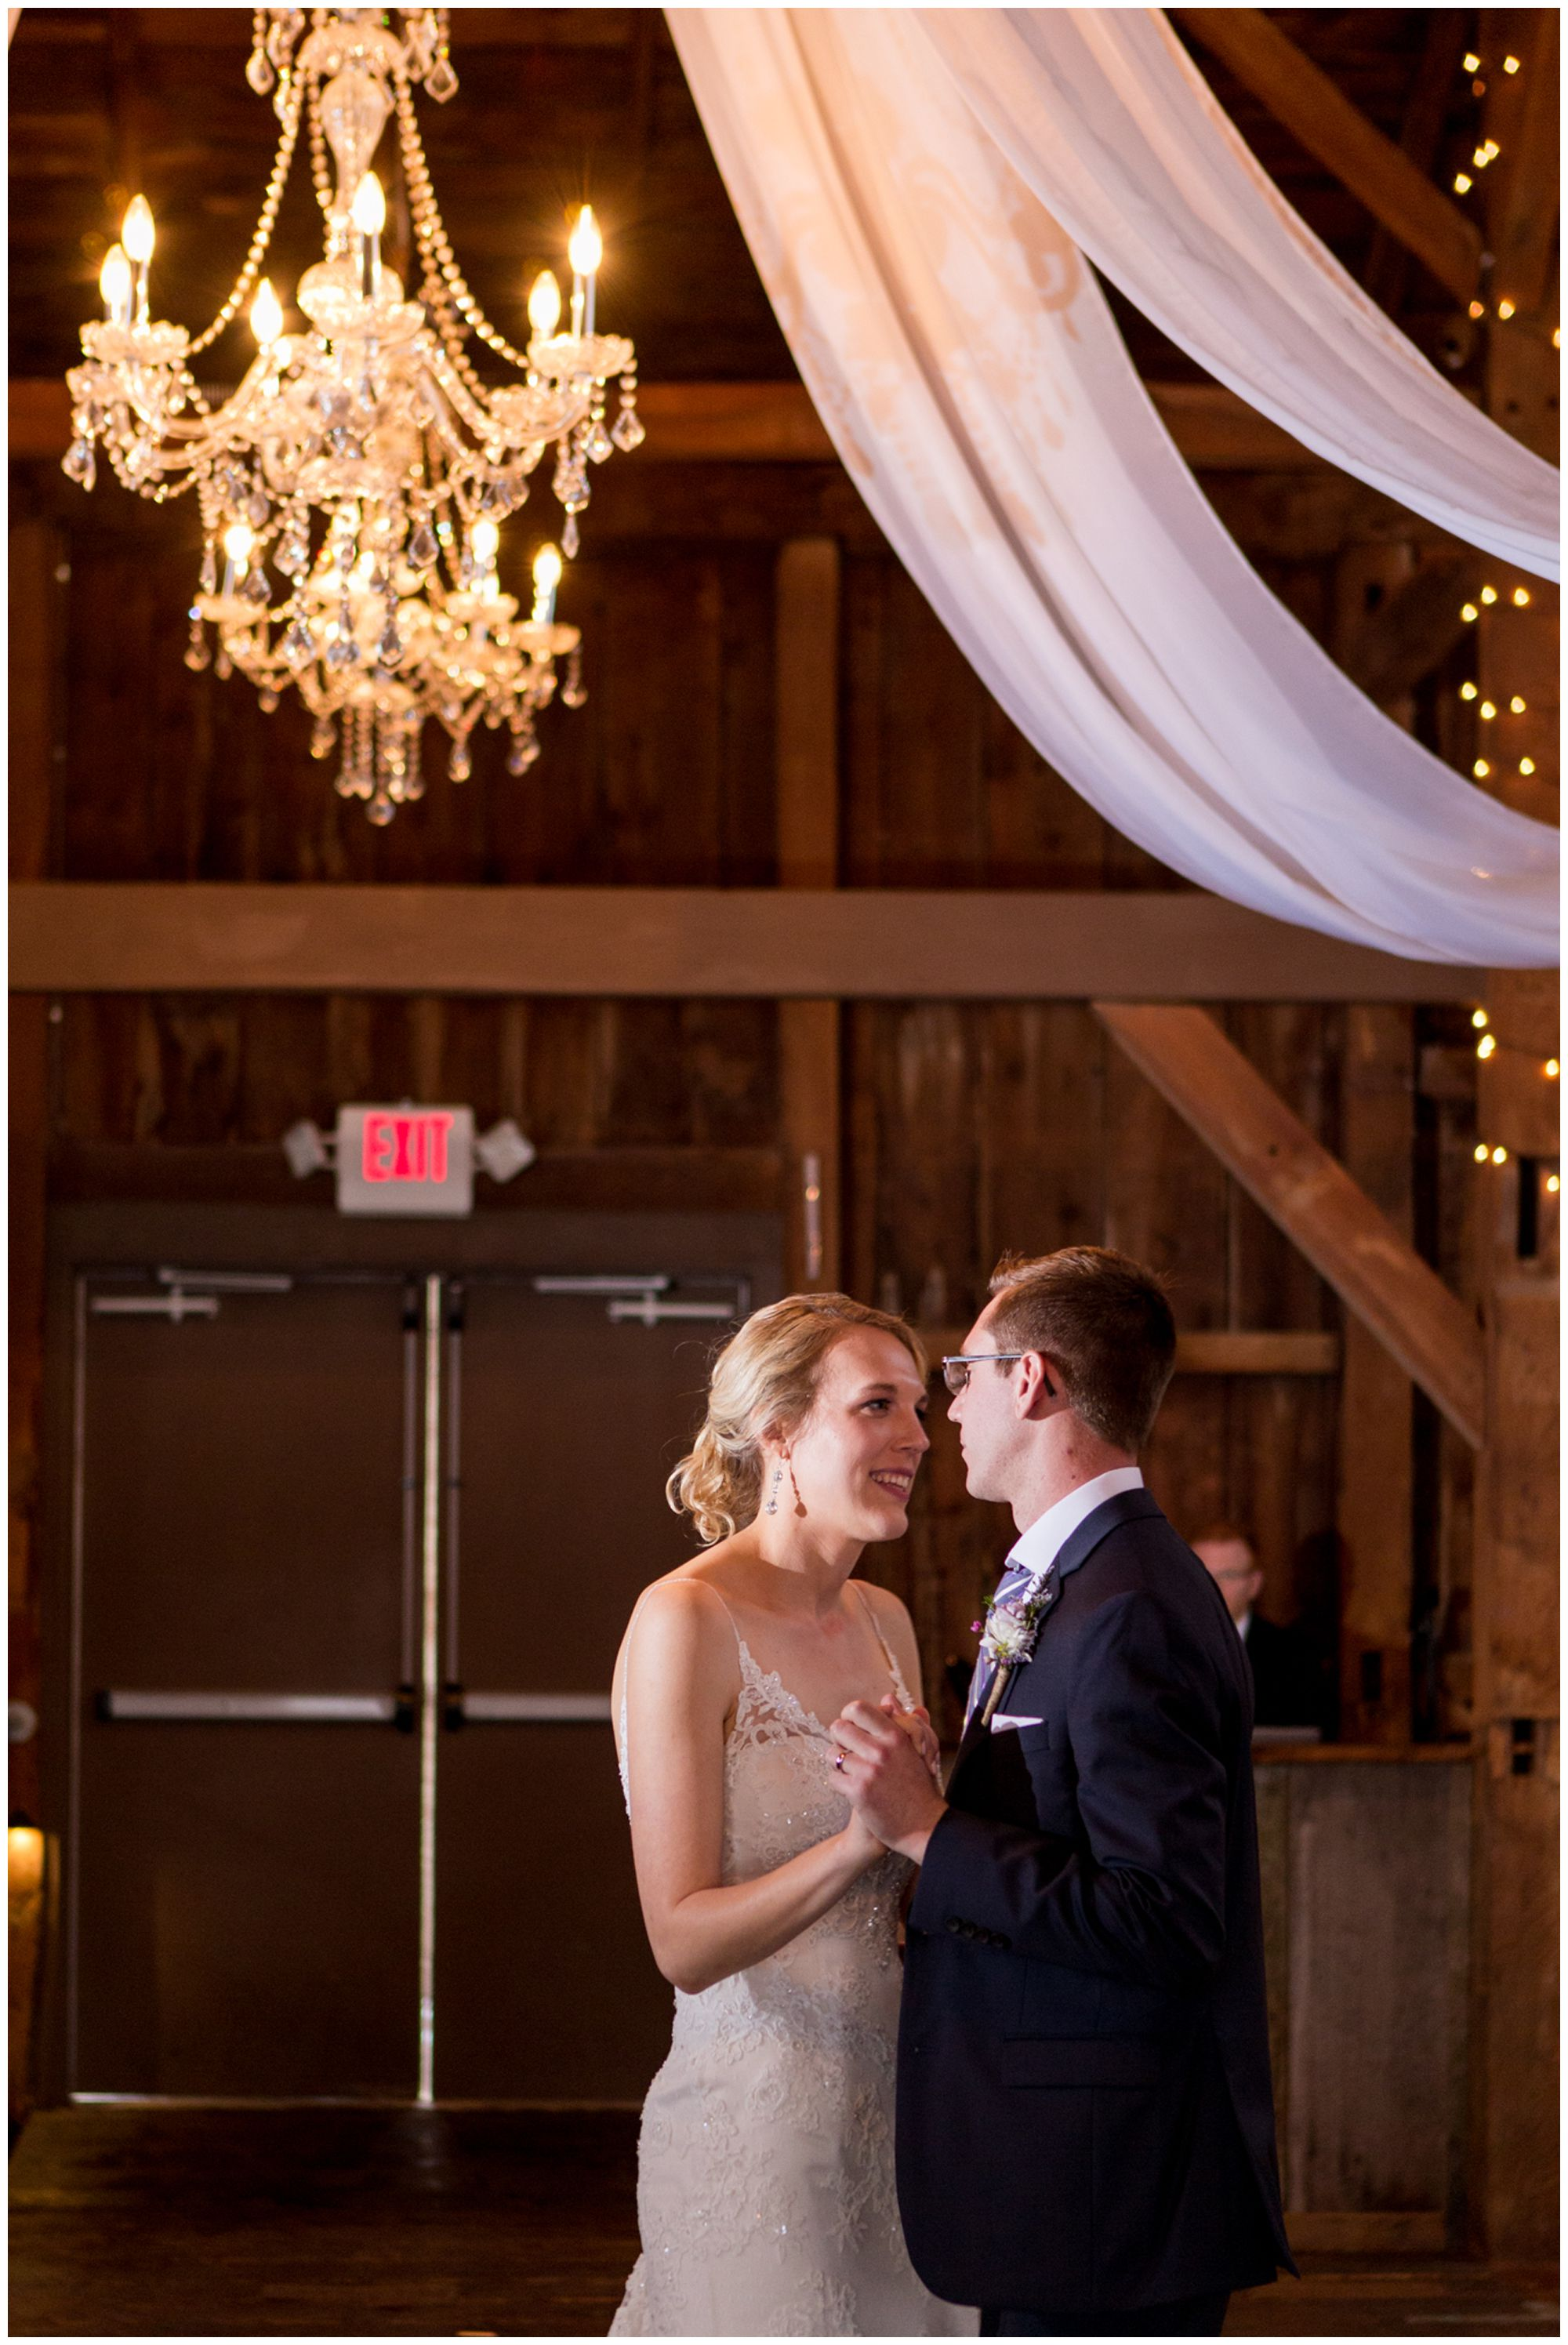 bride and groom first dance during wedding reception at Mustard Seed Gardens